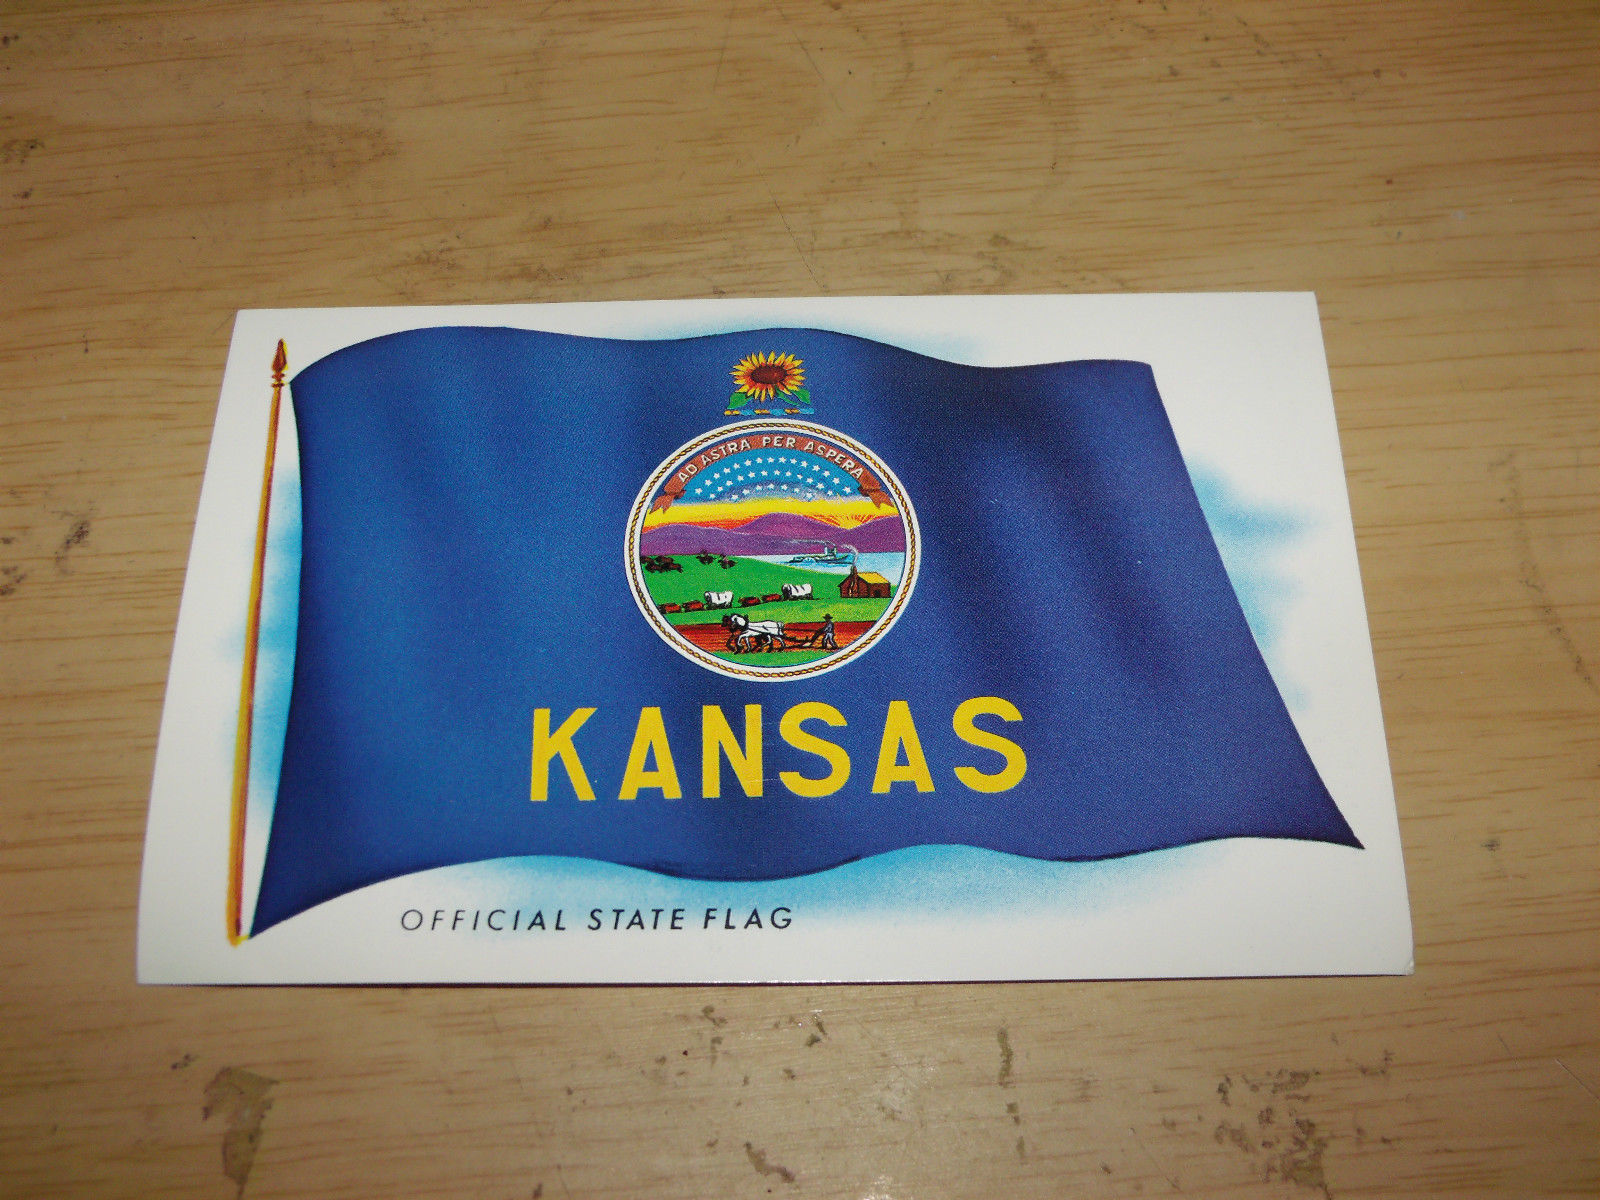 KANSAS OFFICIAL STATE FLAG VINTAGE UNUSED POSTCARD